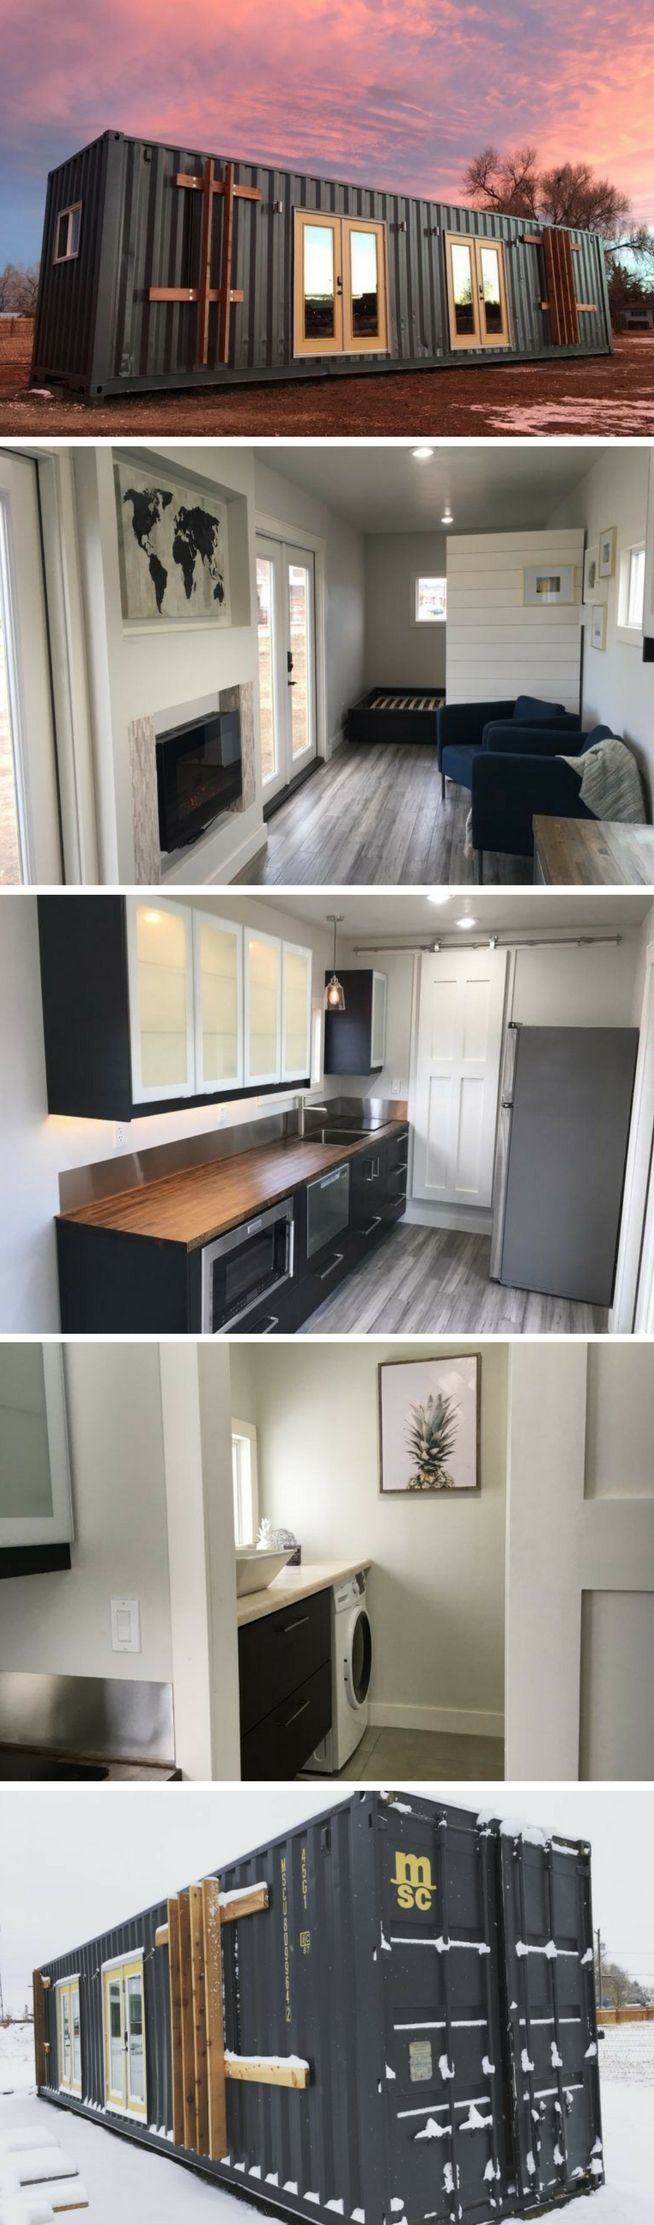 Container House   The Intellectual Tiny Container Home   Who Else Wants  Simple Step By Step Plans To Design And Build A Container Home From Scratch?